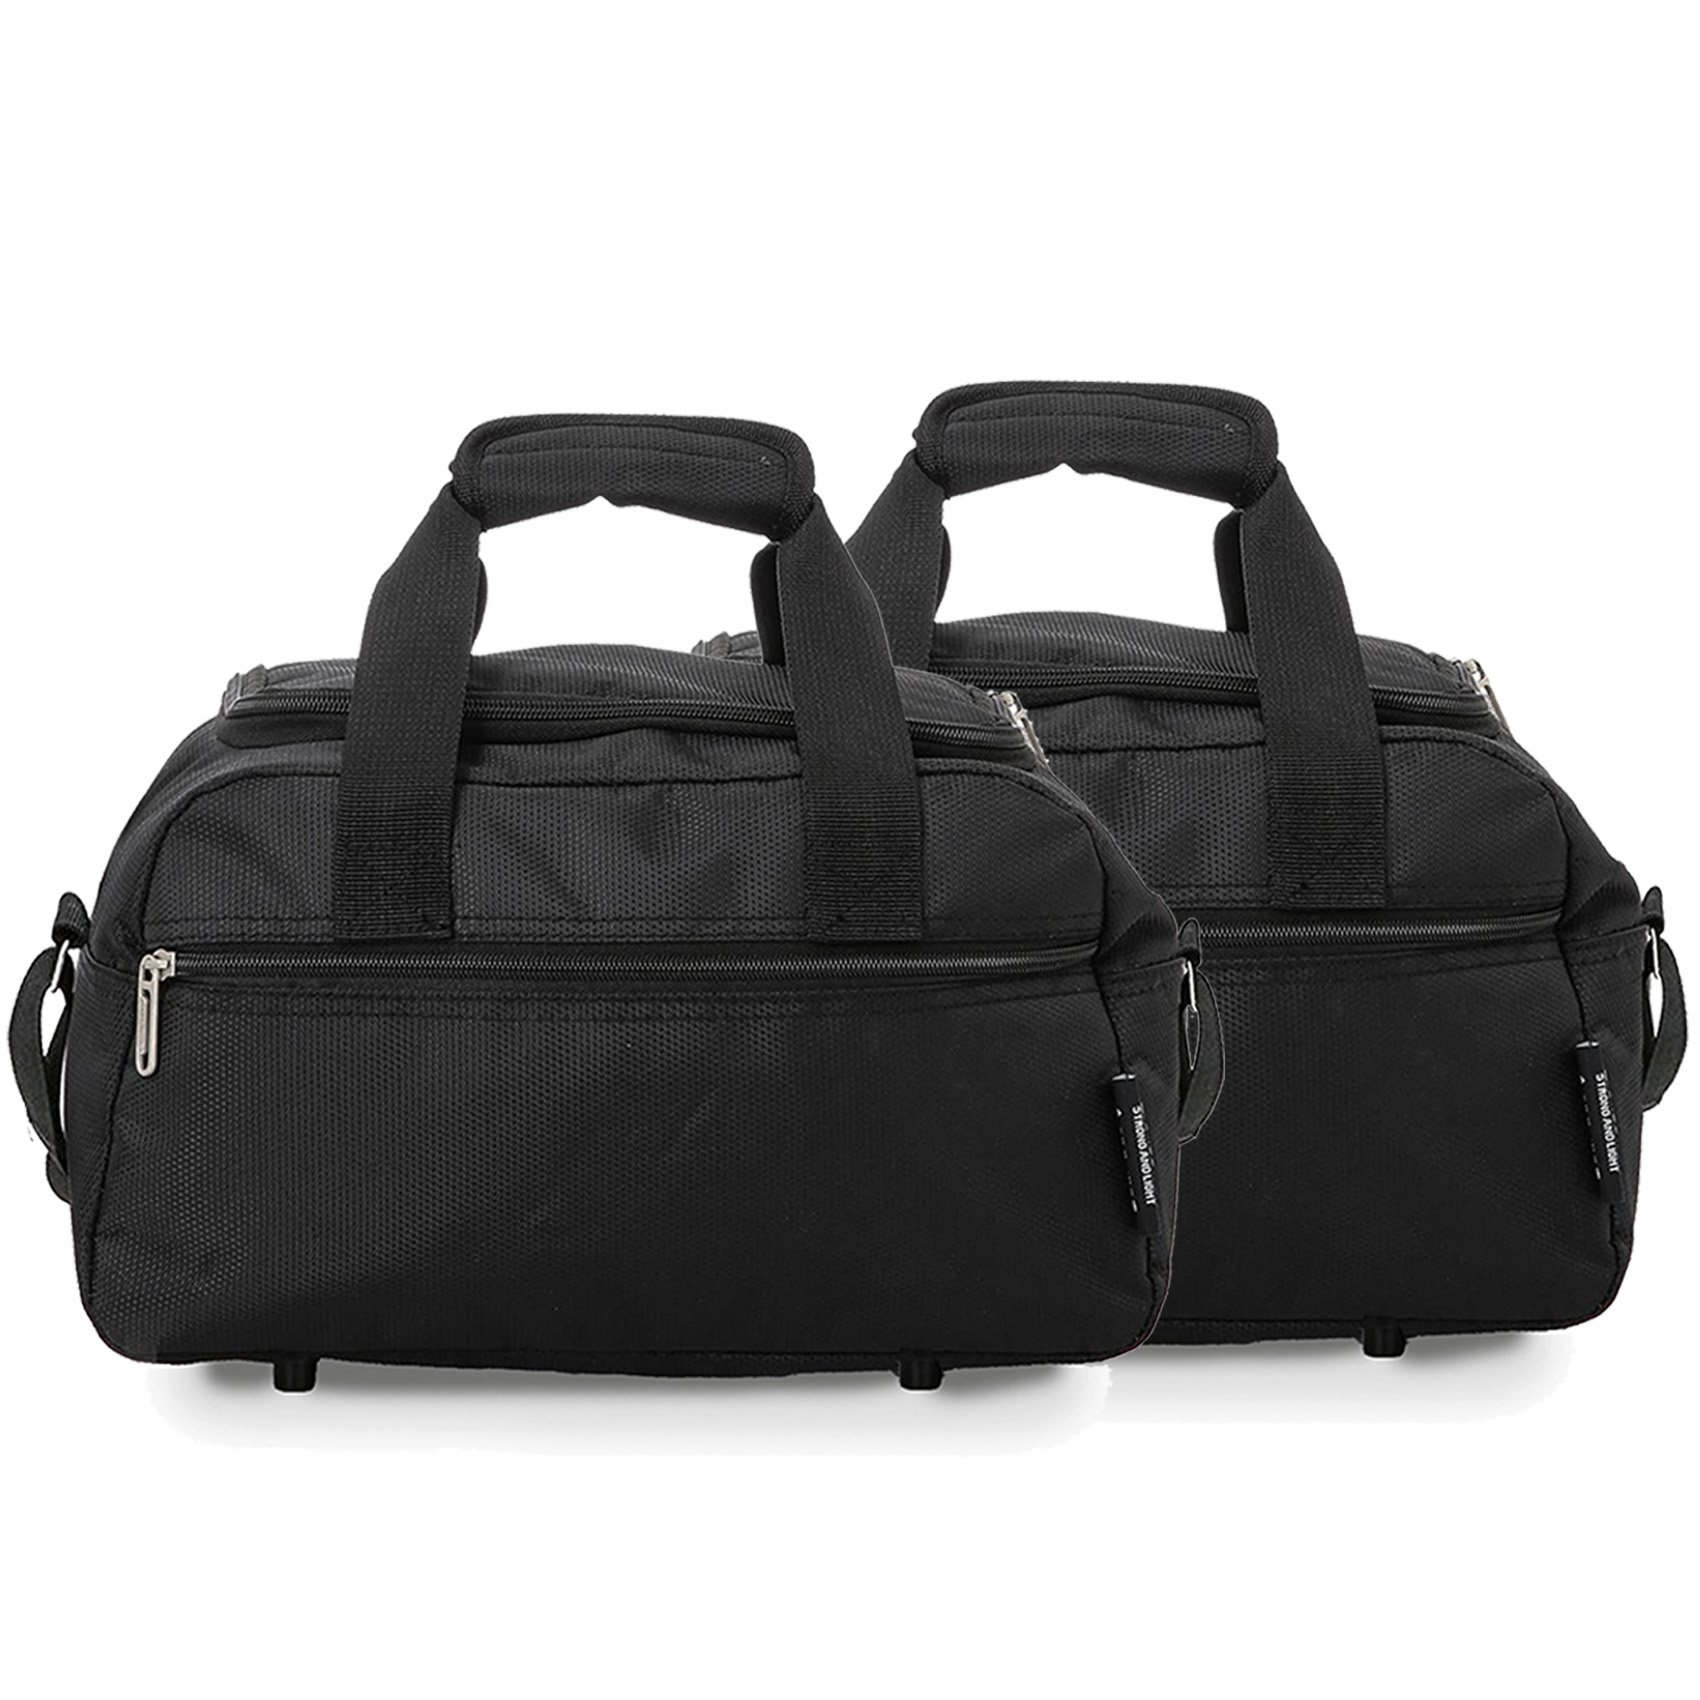 81KxbWh3RRL - Aerolite Holdall Maximum Ryanair Hand Luggage Cabin Sized Flight Shoulder Bag Equipaje de Mano, 35 cm, 14 Liters, Negro…